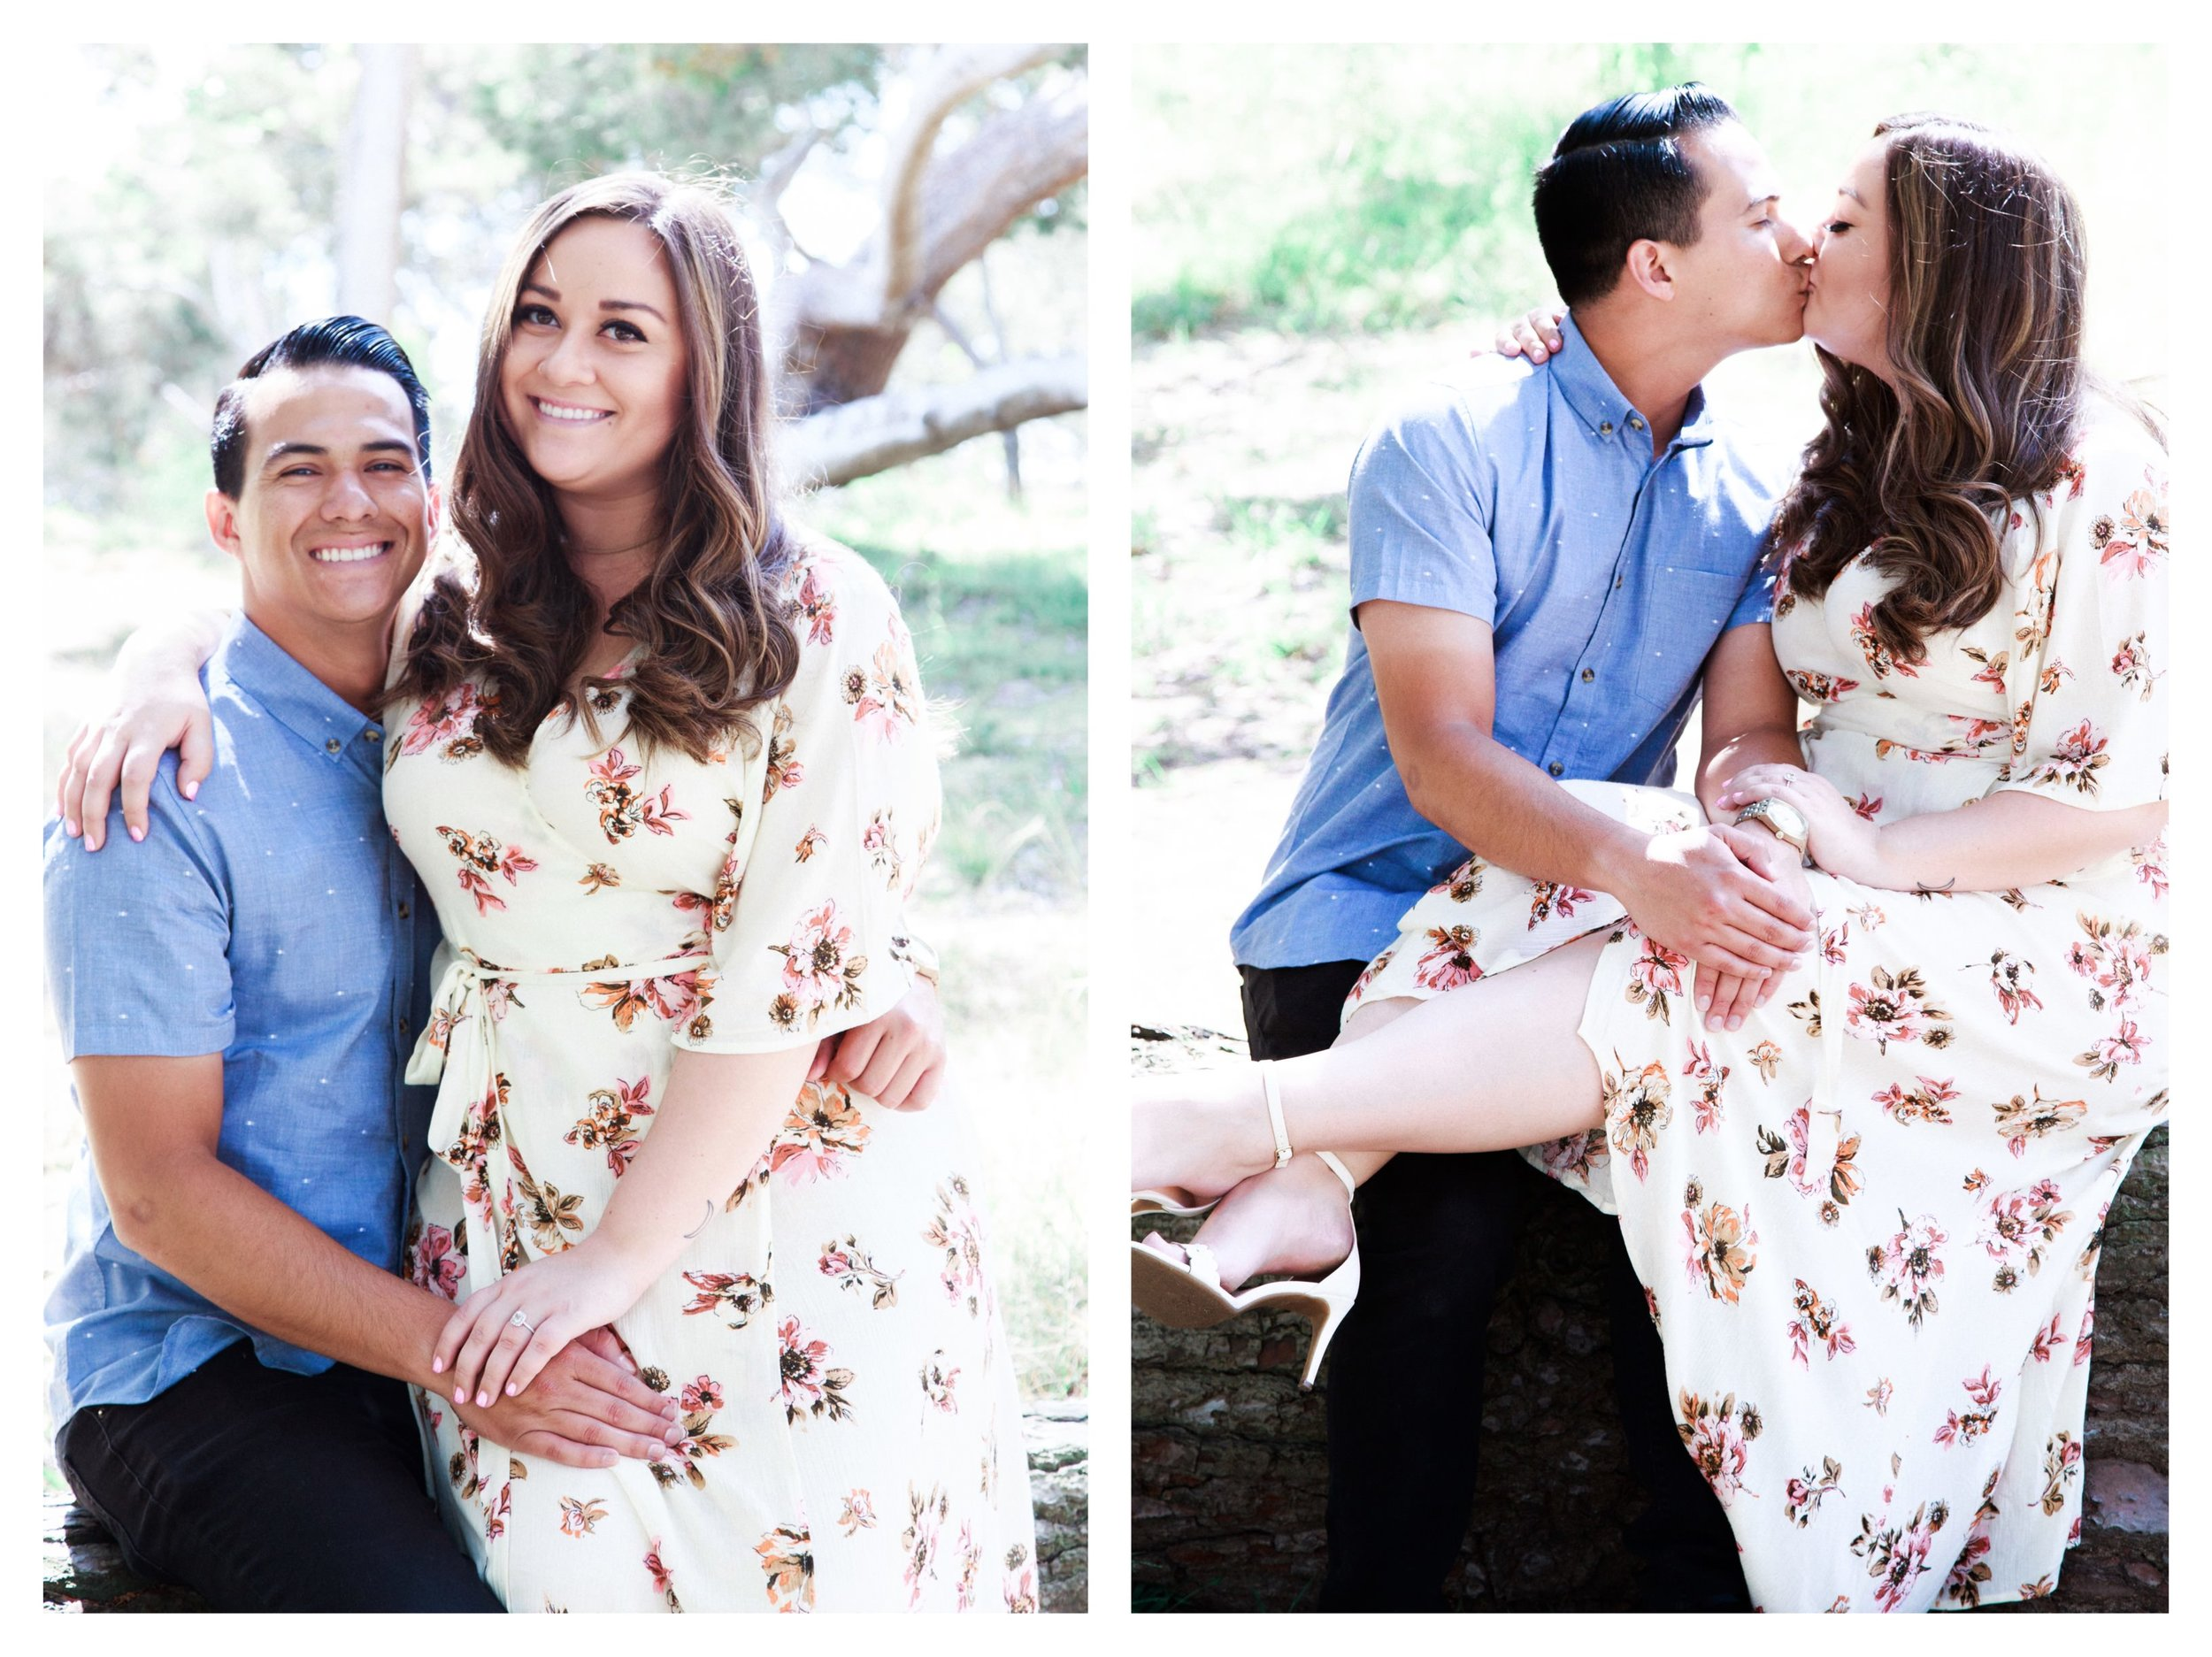 Wilderness Park Engagement Photography images from South Bay Boutique wedding and portrait photography business Daniel Doty Photography.